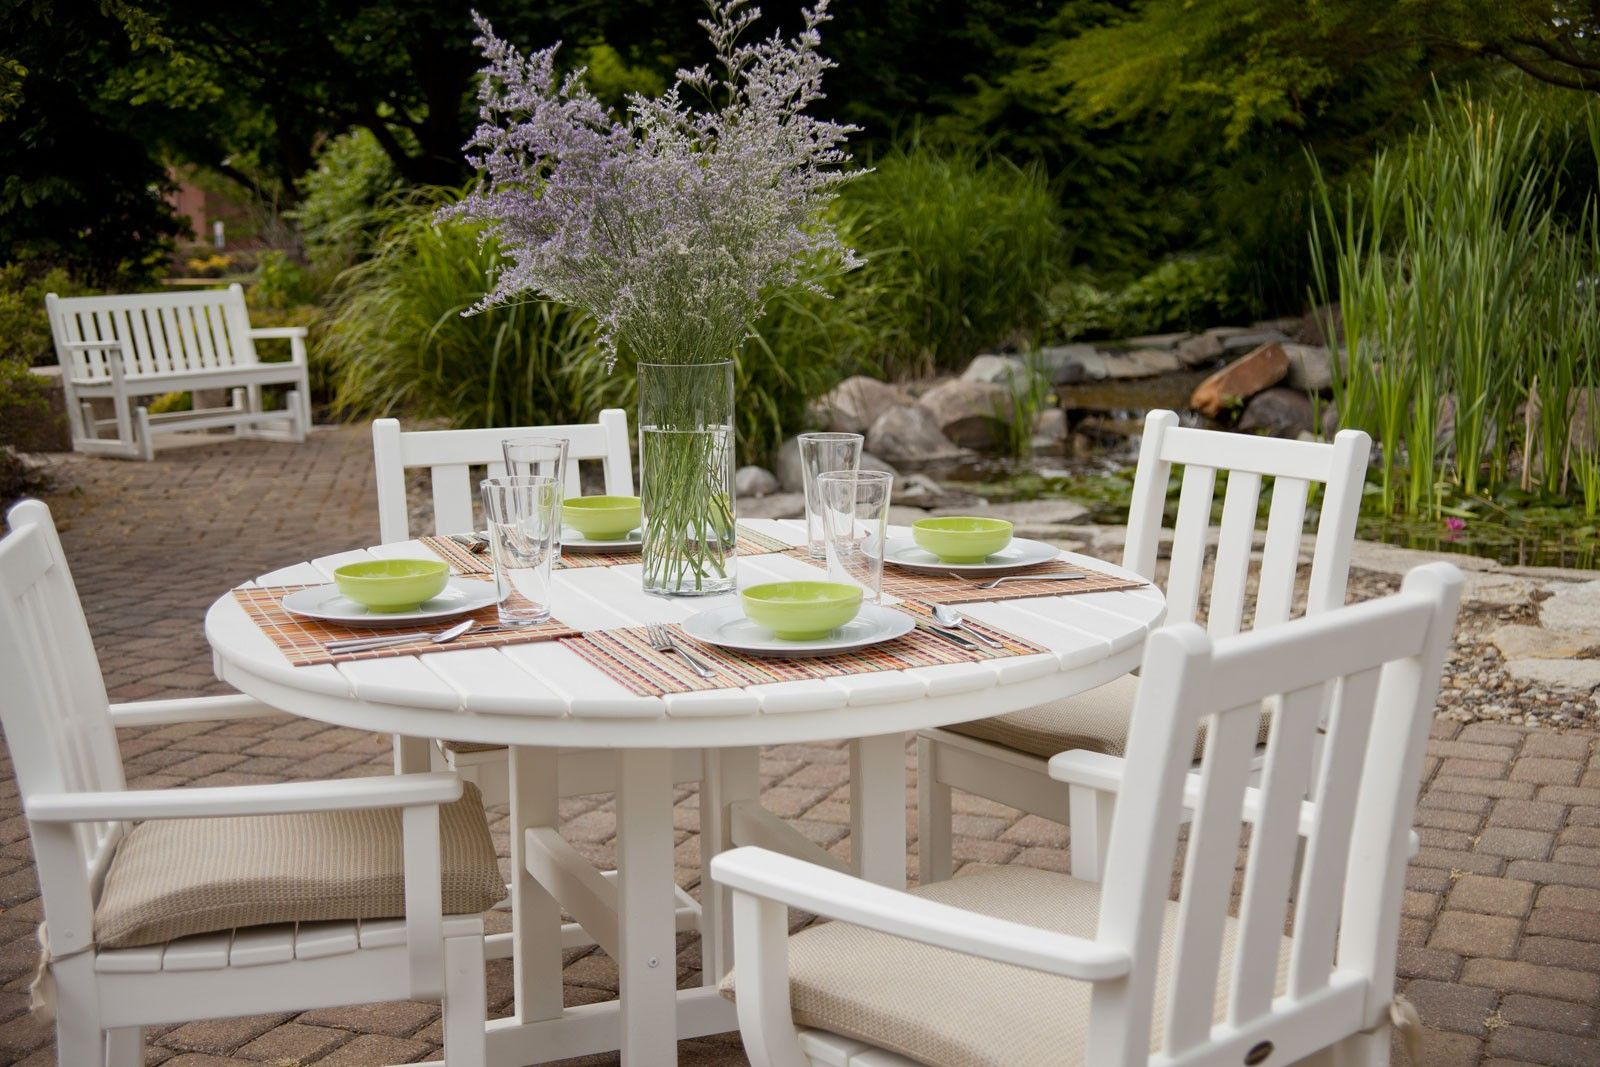 Polywood 48 La Casa Cafe Round Dining Table Outdoor Dining Set Traditional Garden Outdoor Dining